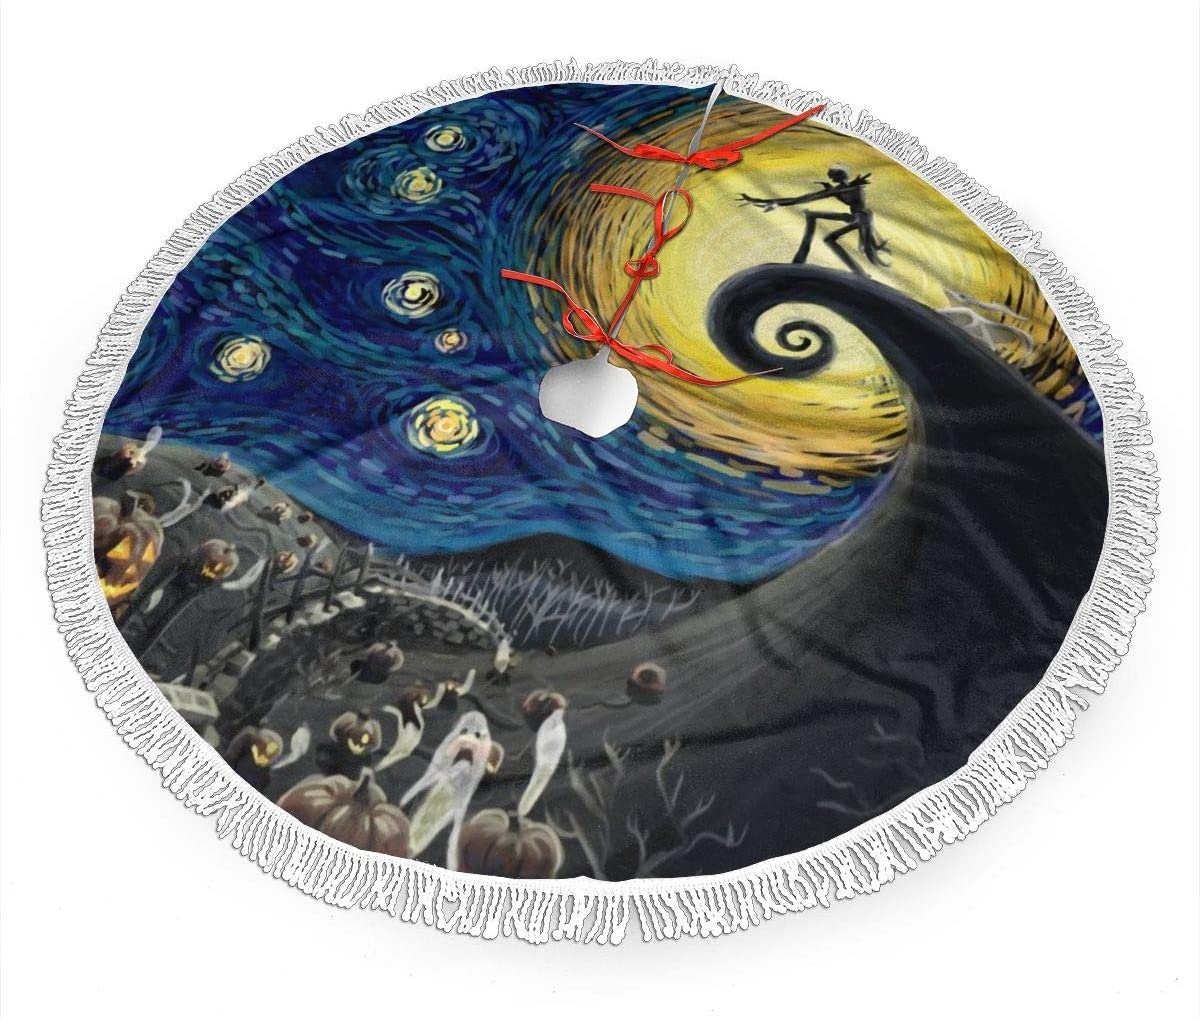 FUNINDIY Christmas Tree Skirt with Fringed Edge The Nightmare Before Christmas The Starry Night 48 Inch Xmas Tree Skirt Mat Christmas Decoration New Year Party Supply